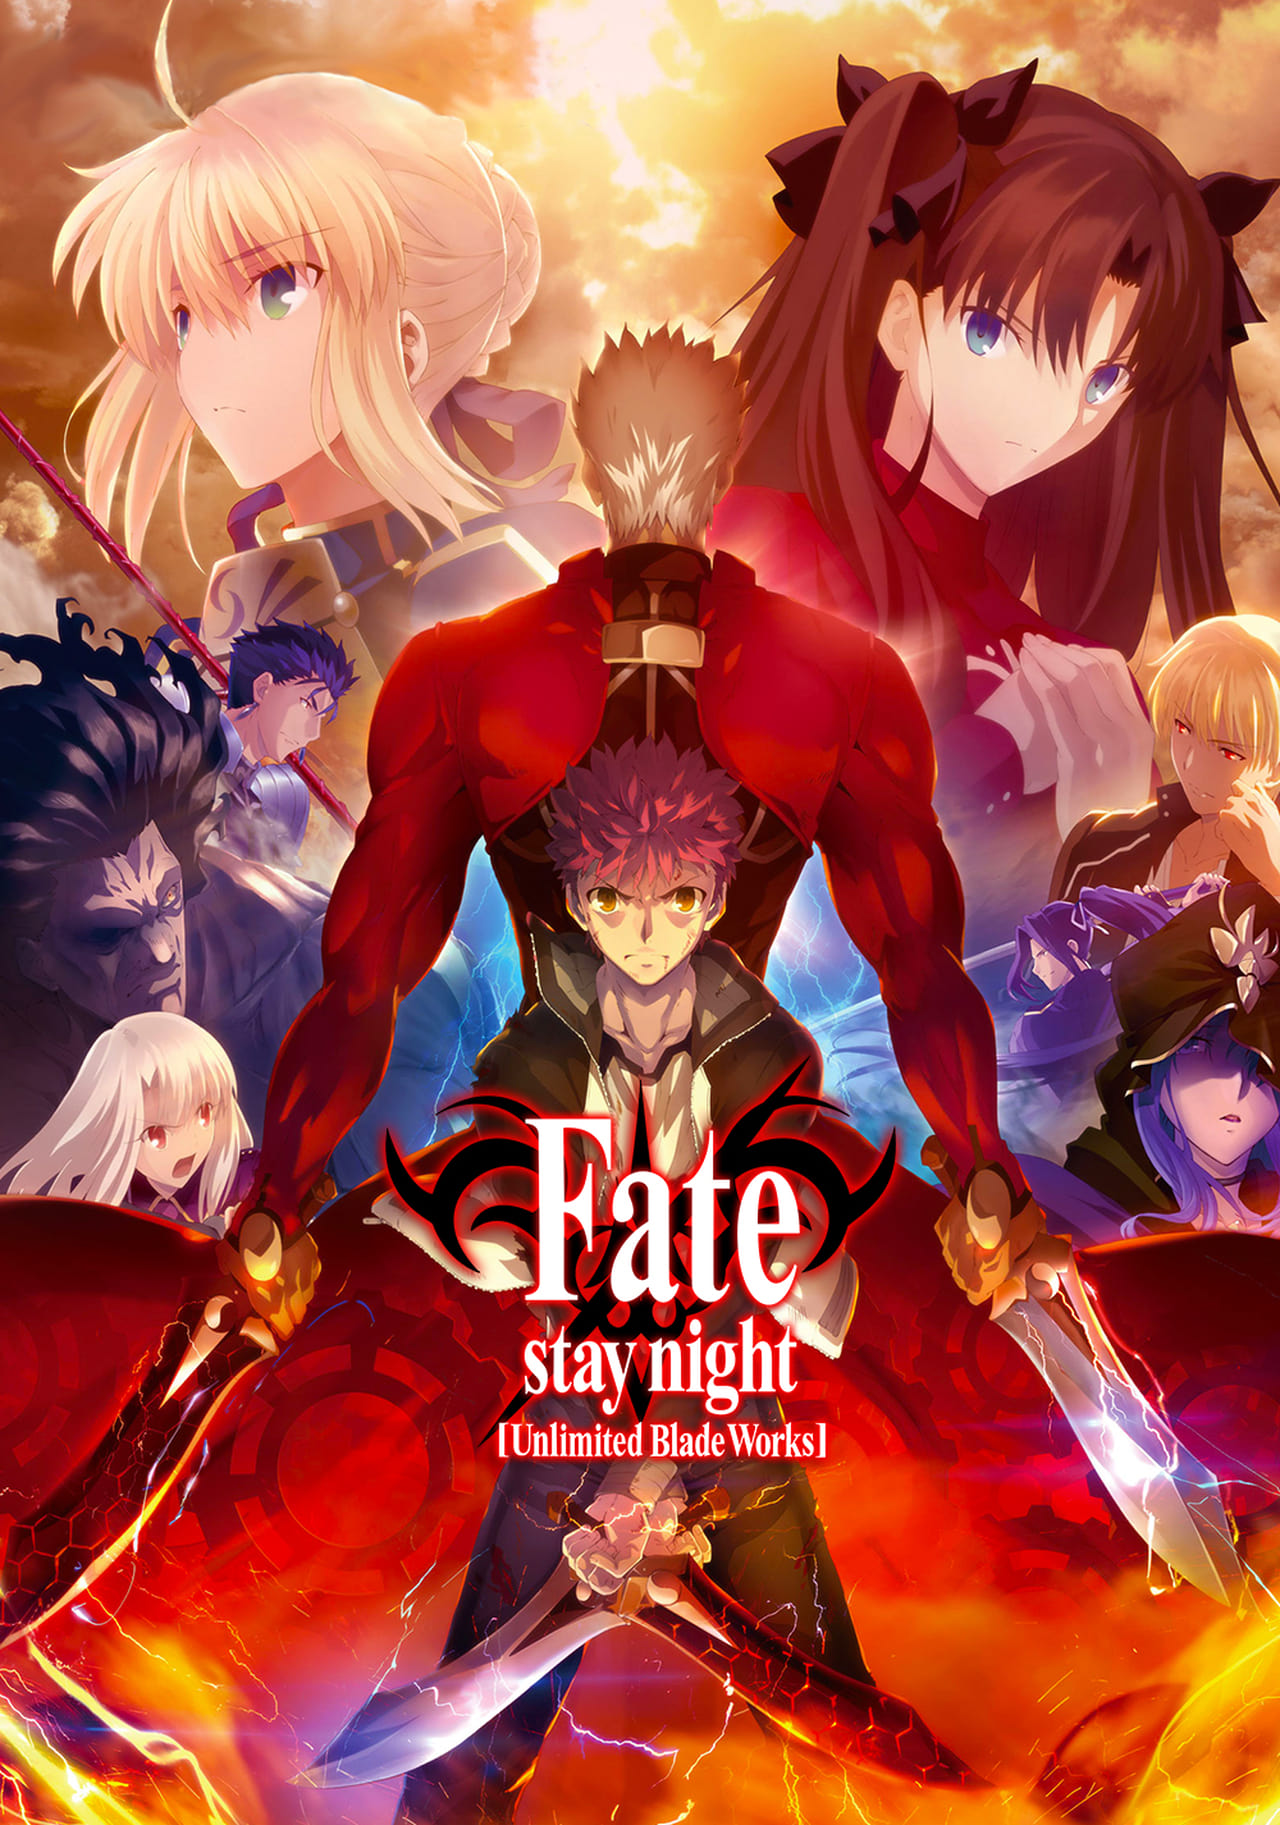 Fate/stay night [Unlimited Blade Works]